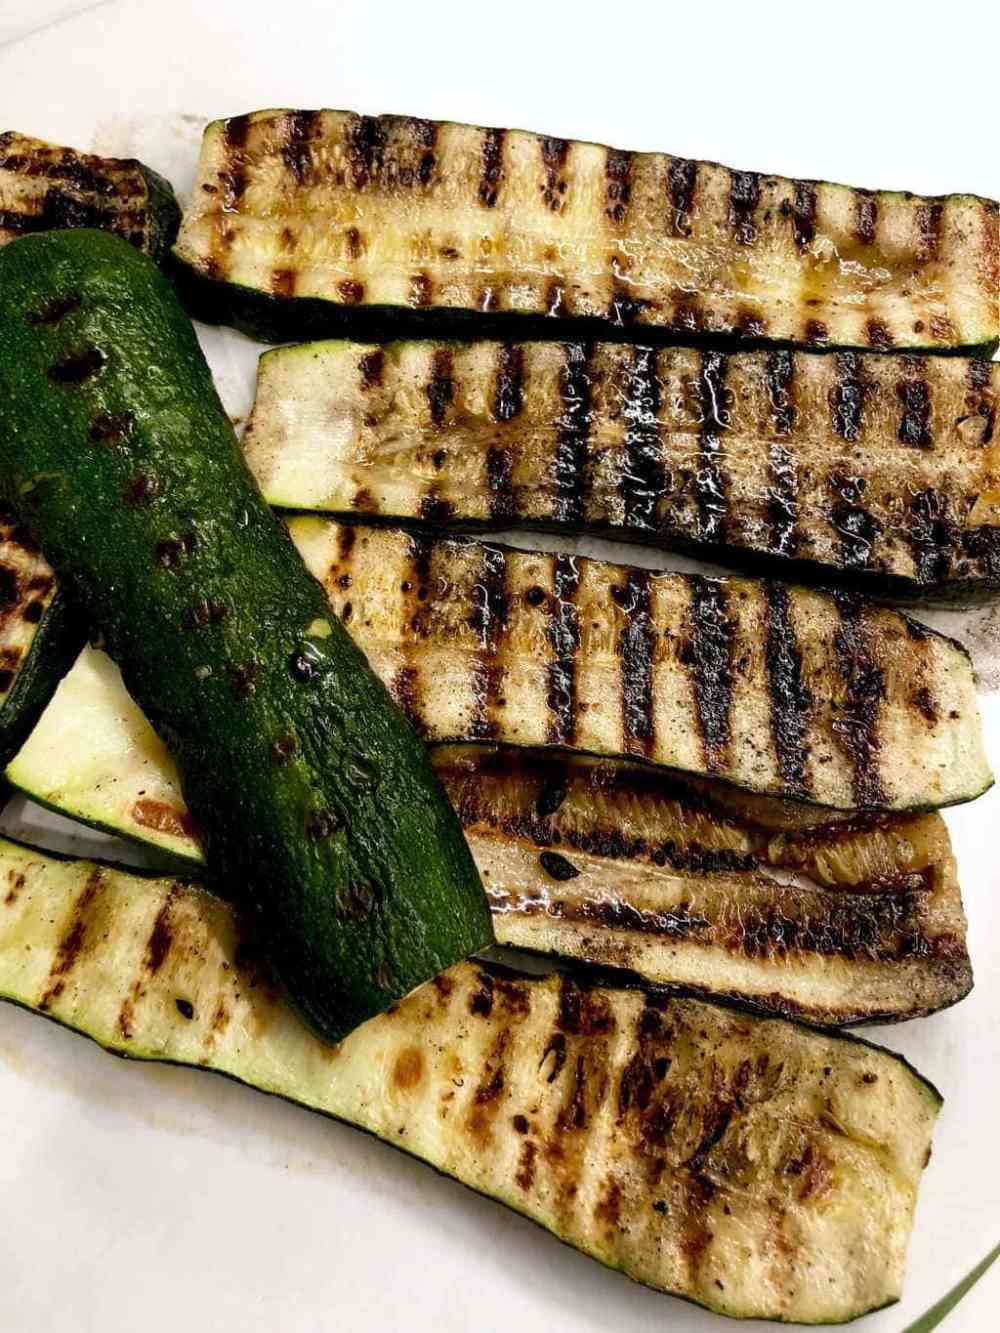 grilled zucchini on a plate